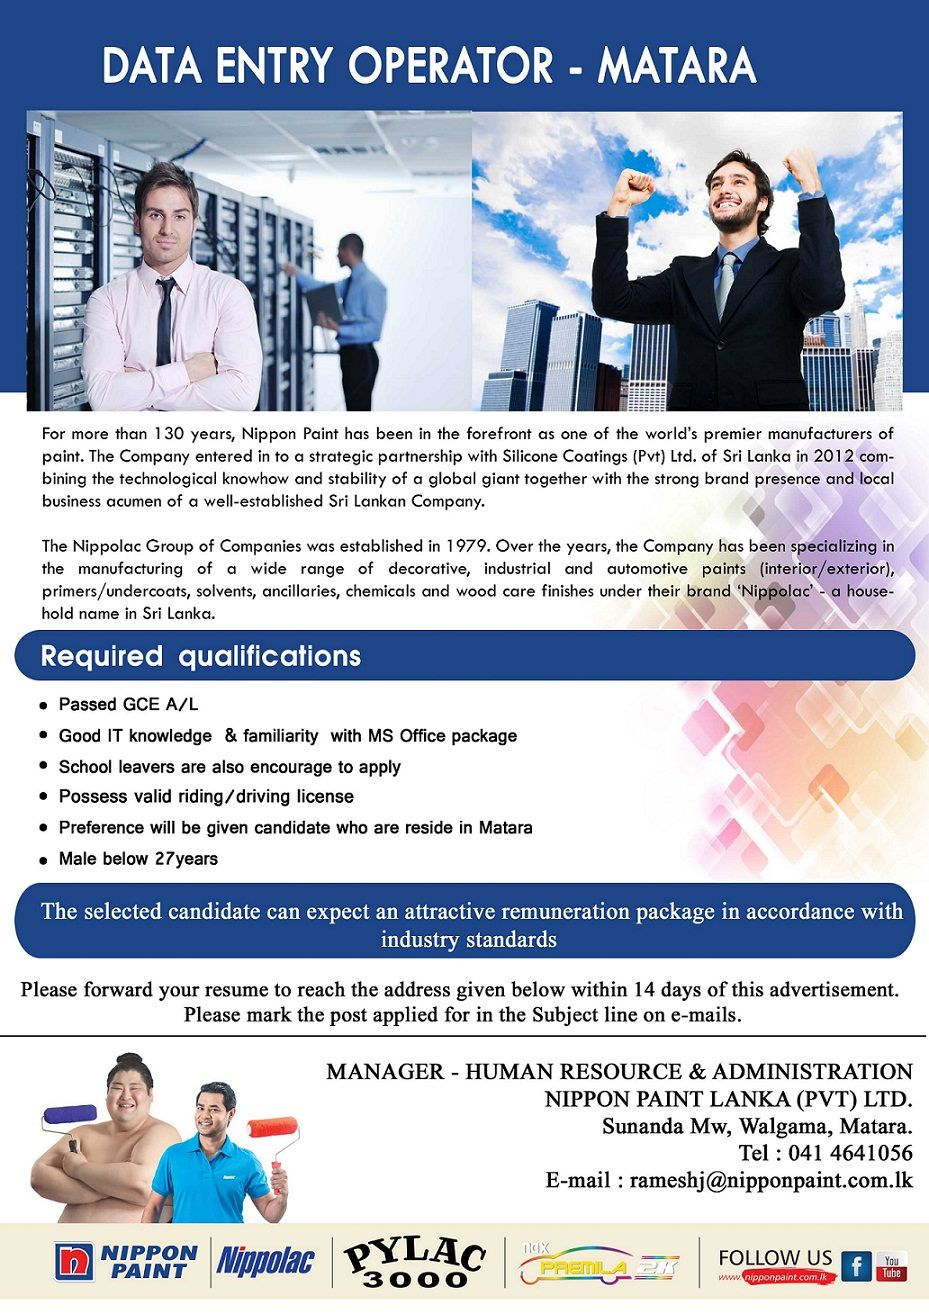 Data Entry Operator At Nippon Paint Lanka Pvt Ltd Career First Nippon Paint Freelance Writing Data Entry